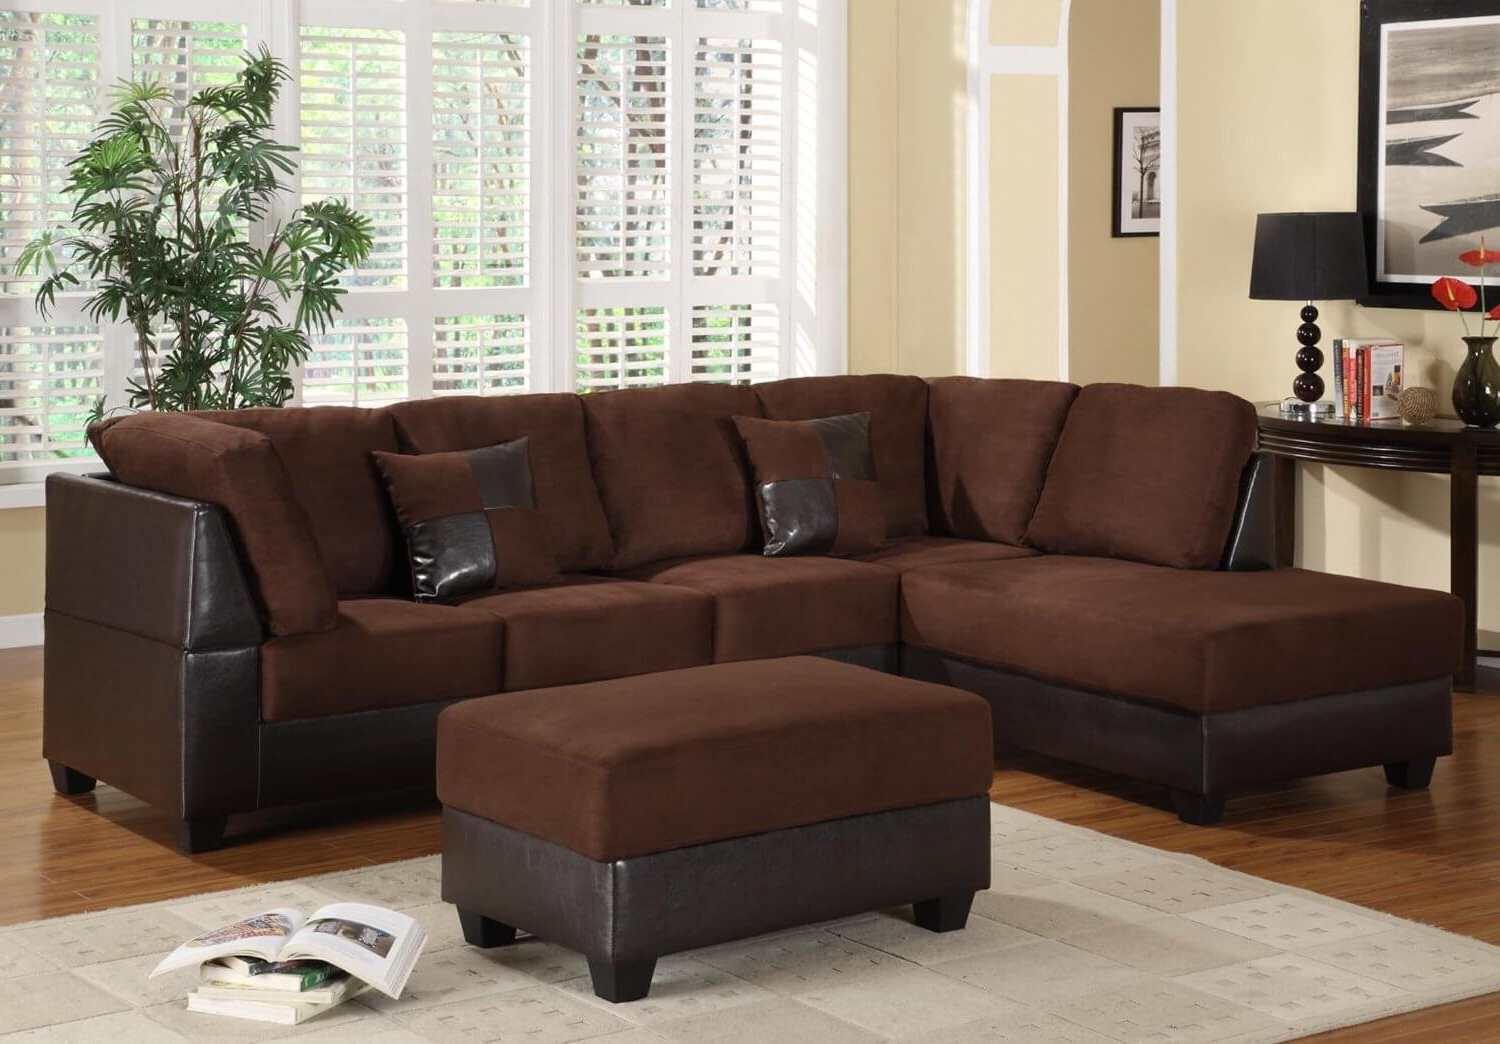 Sectional Sofas Under 700 Throughout Newest 40 Cheap Sectional Sofas Under $500 For  (View 9 of 15)